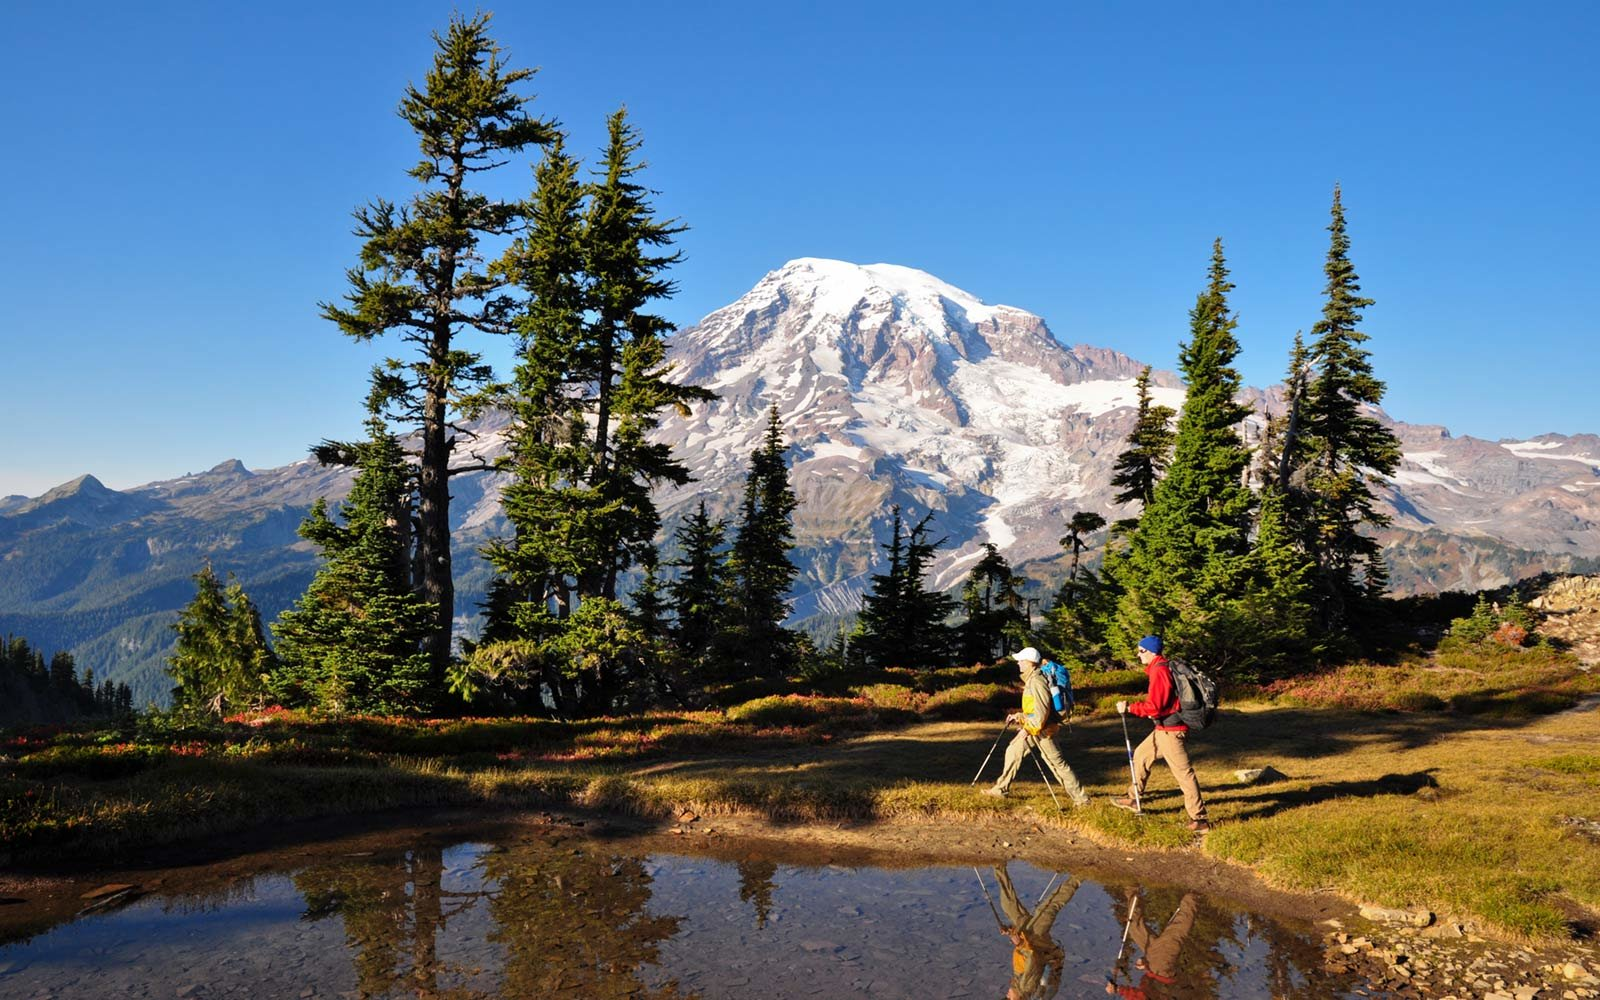 19. Mount Rainier National Park